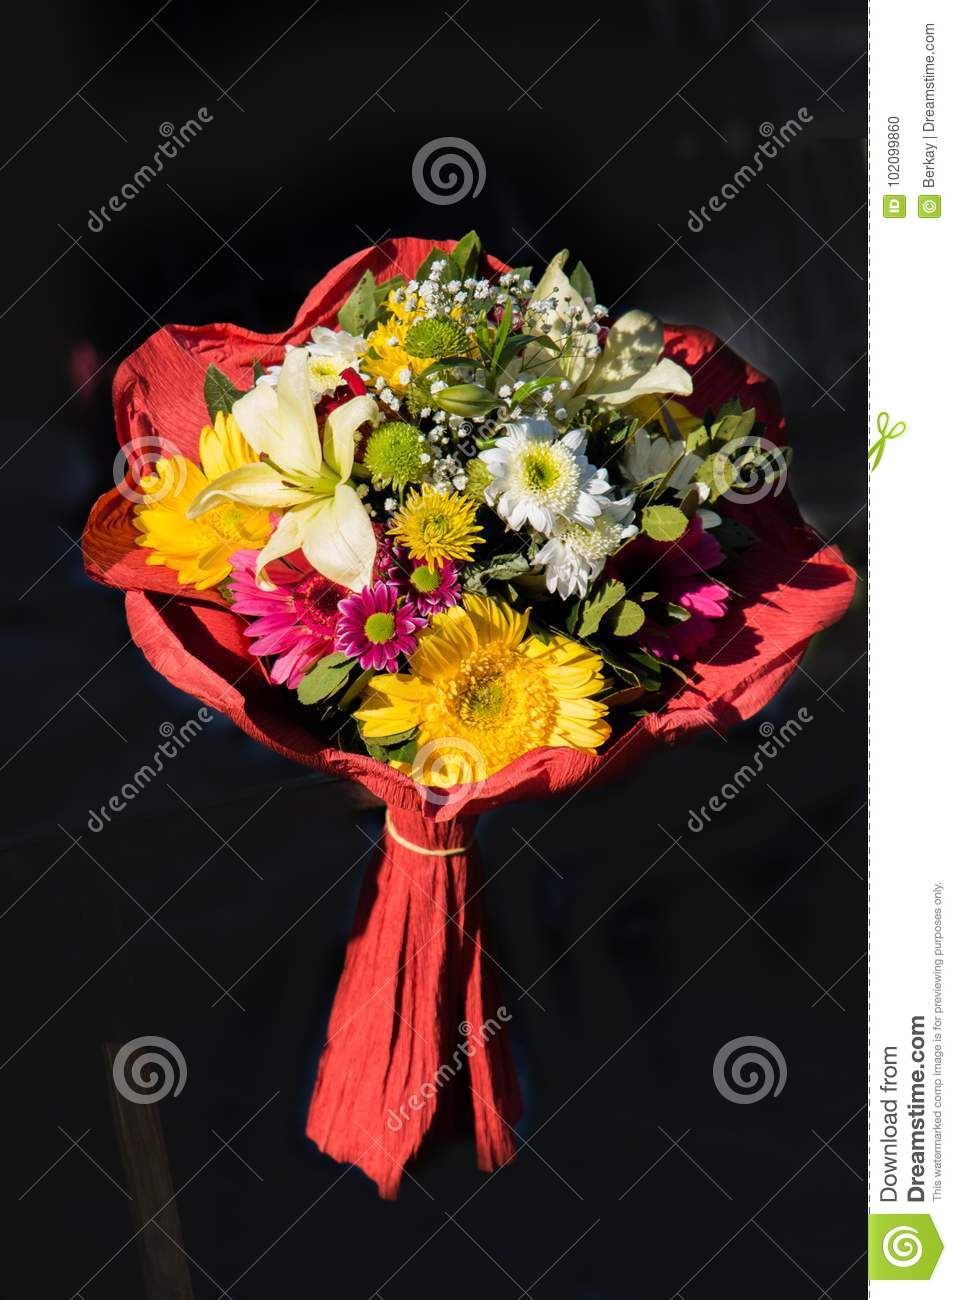 Beautiful Bouquet Of Flowers Of Various Types Stock Photo - Image of ...